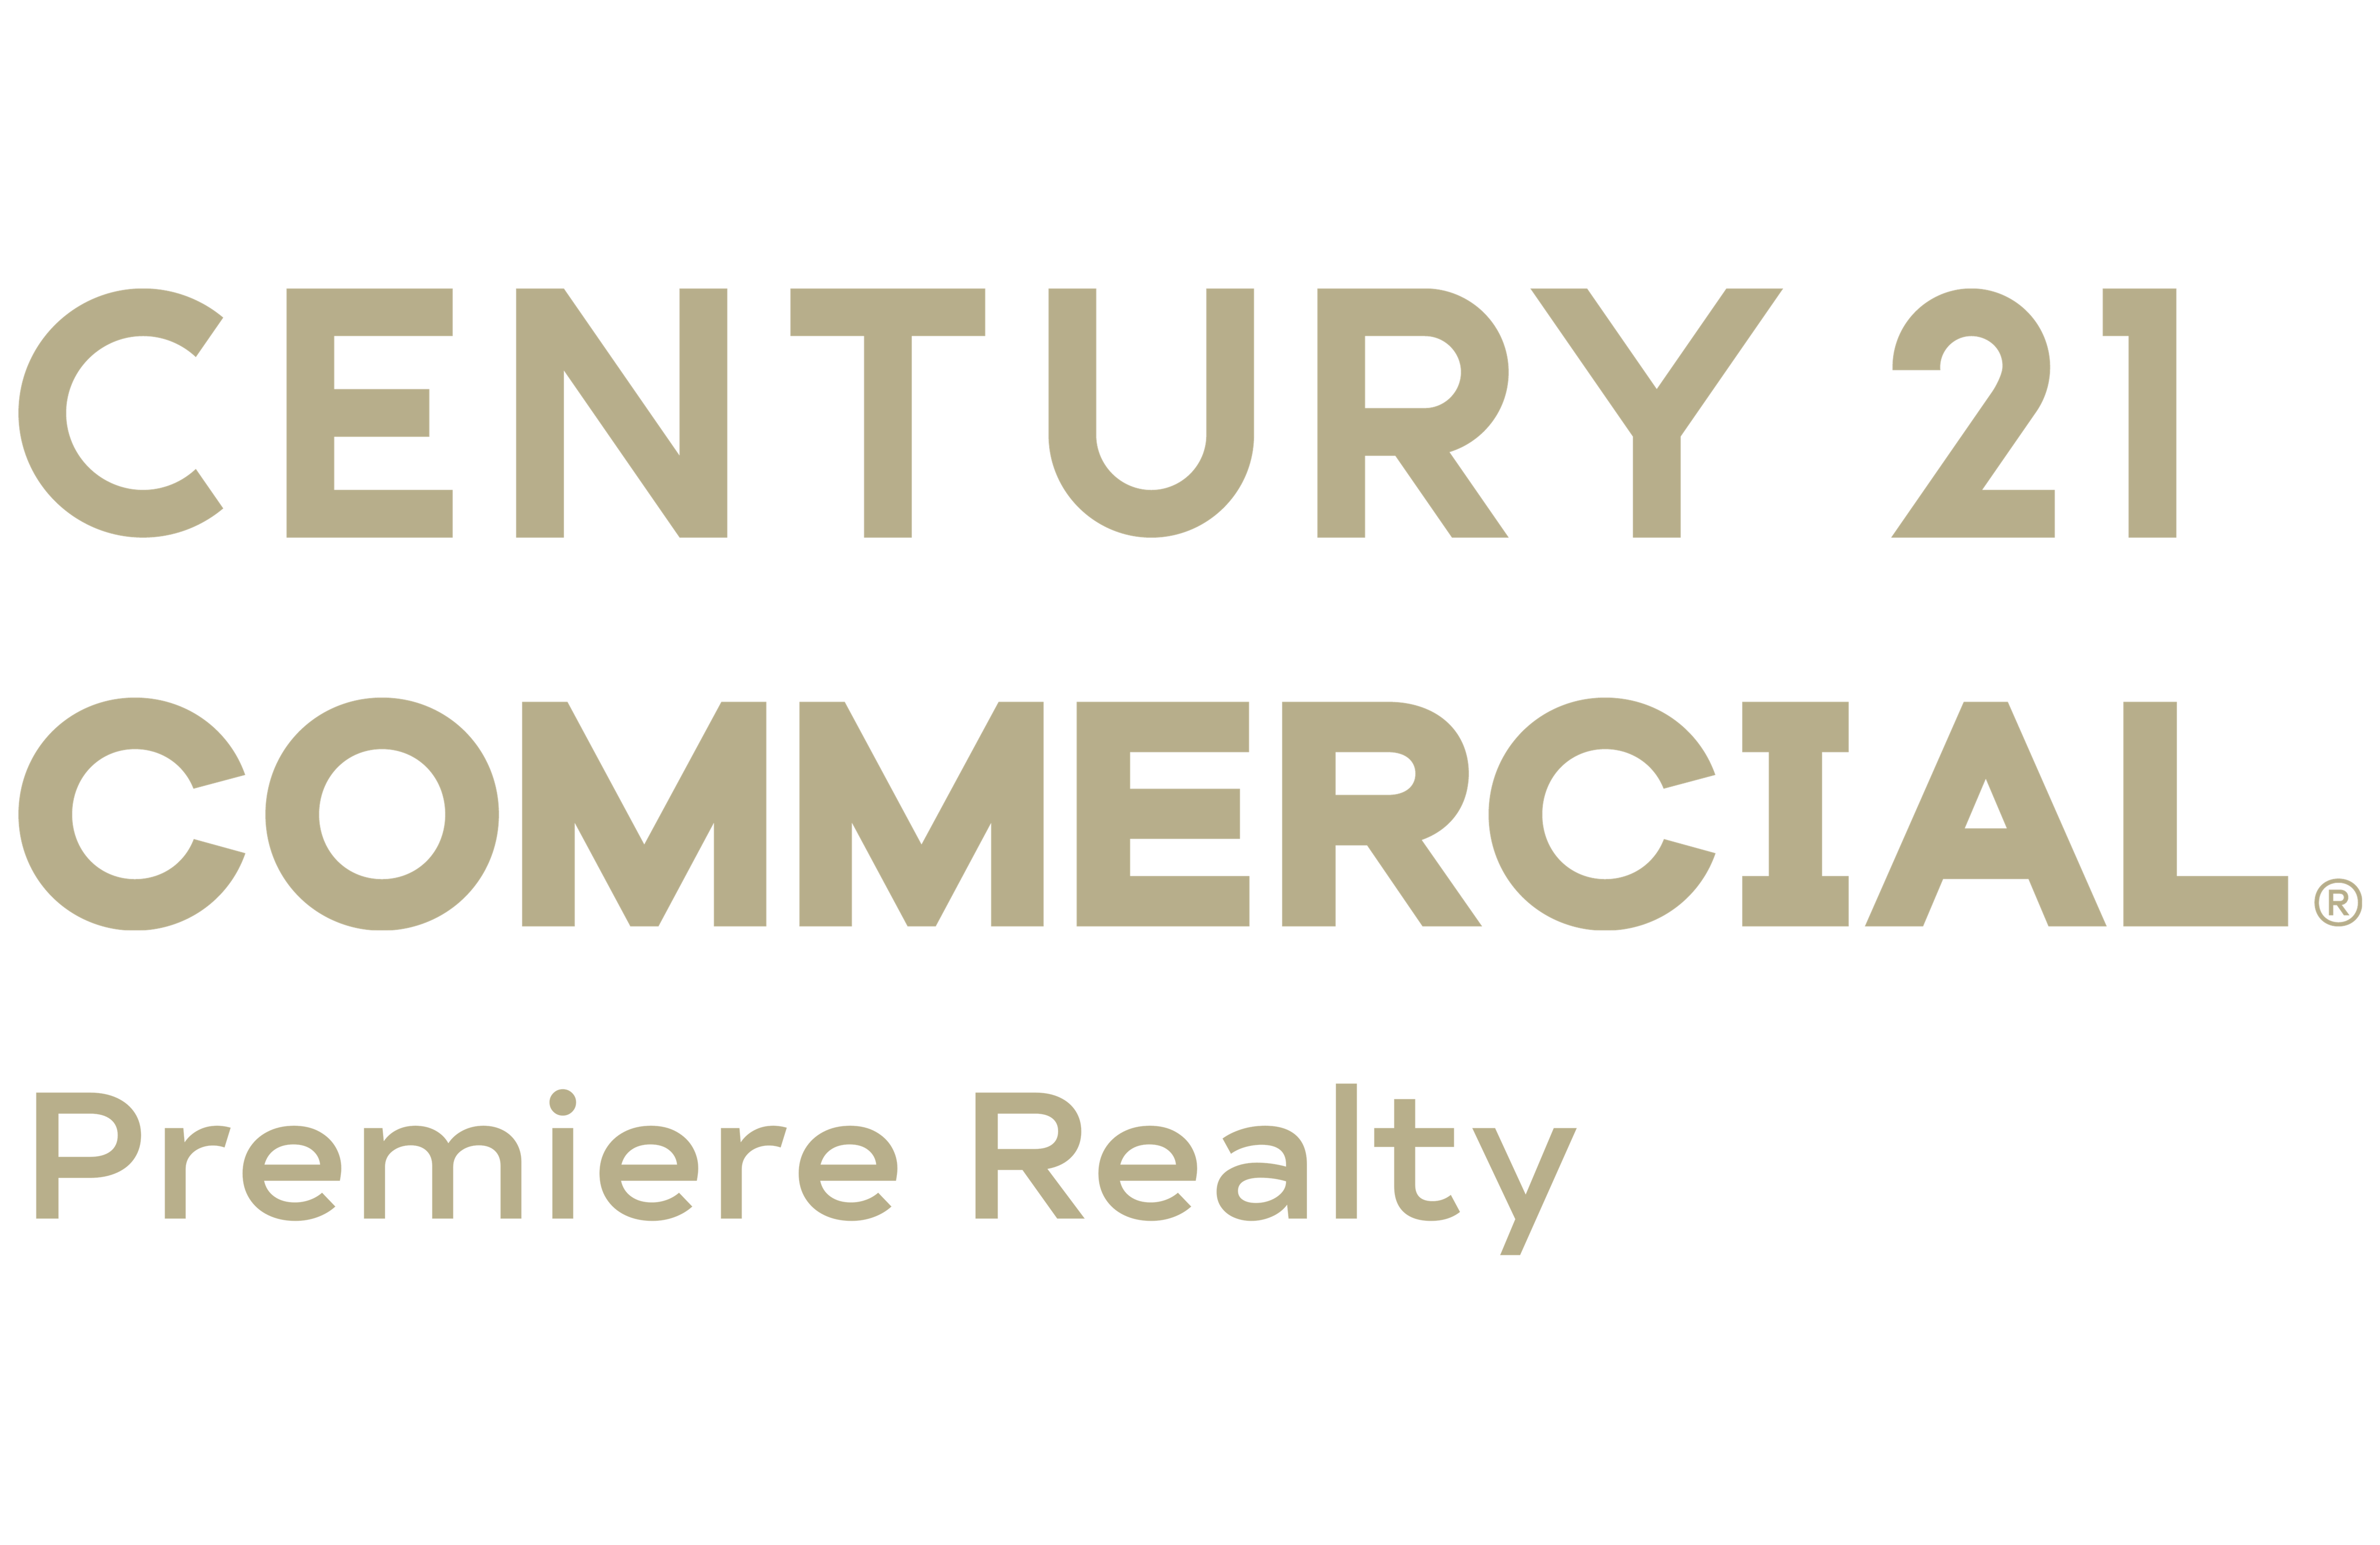 CENTURY 21 Premiere Realty